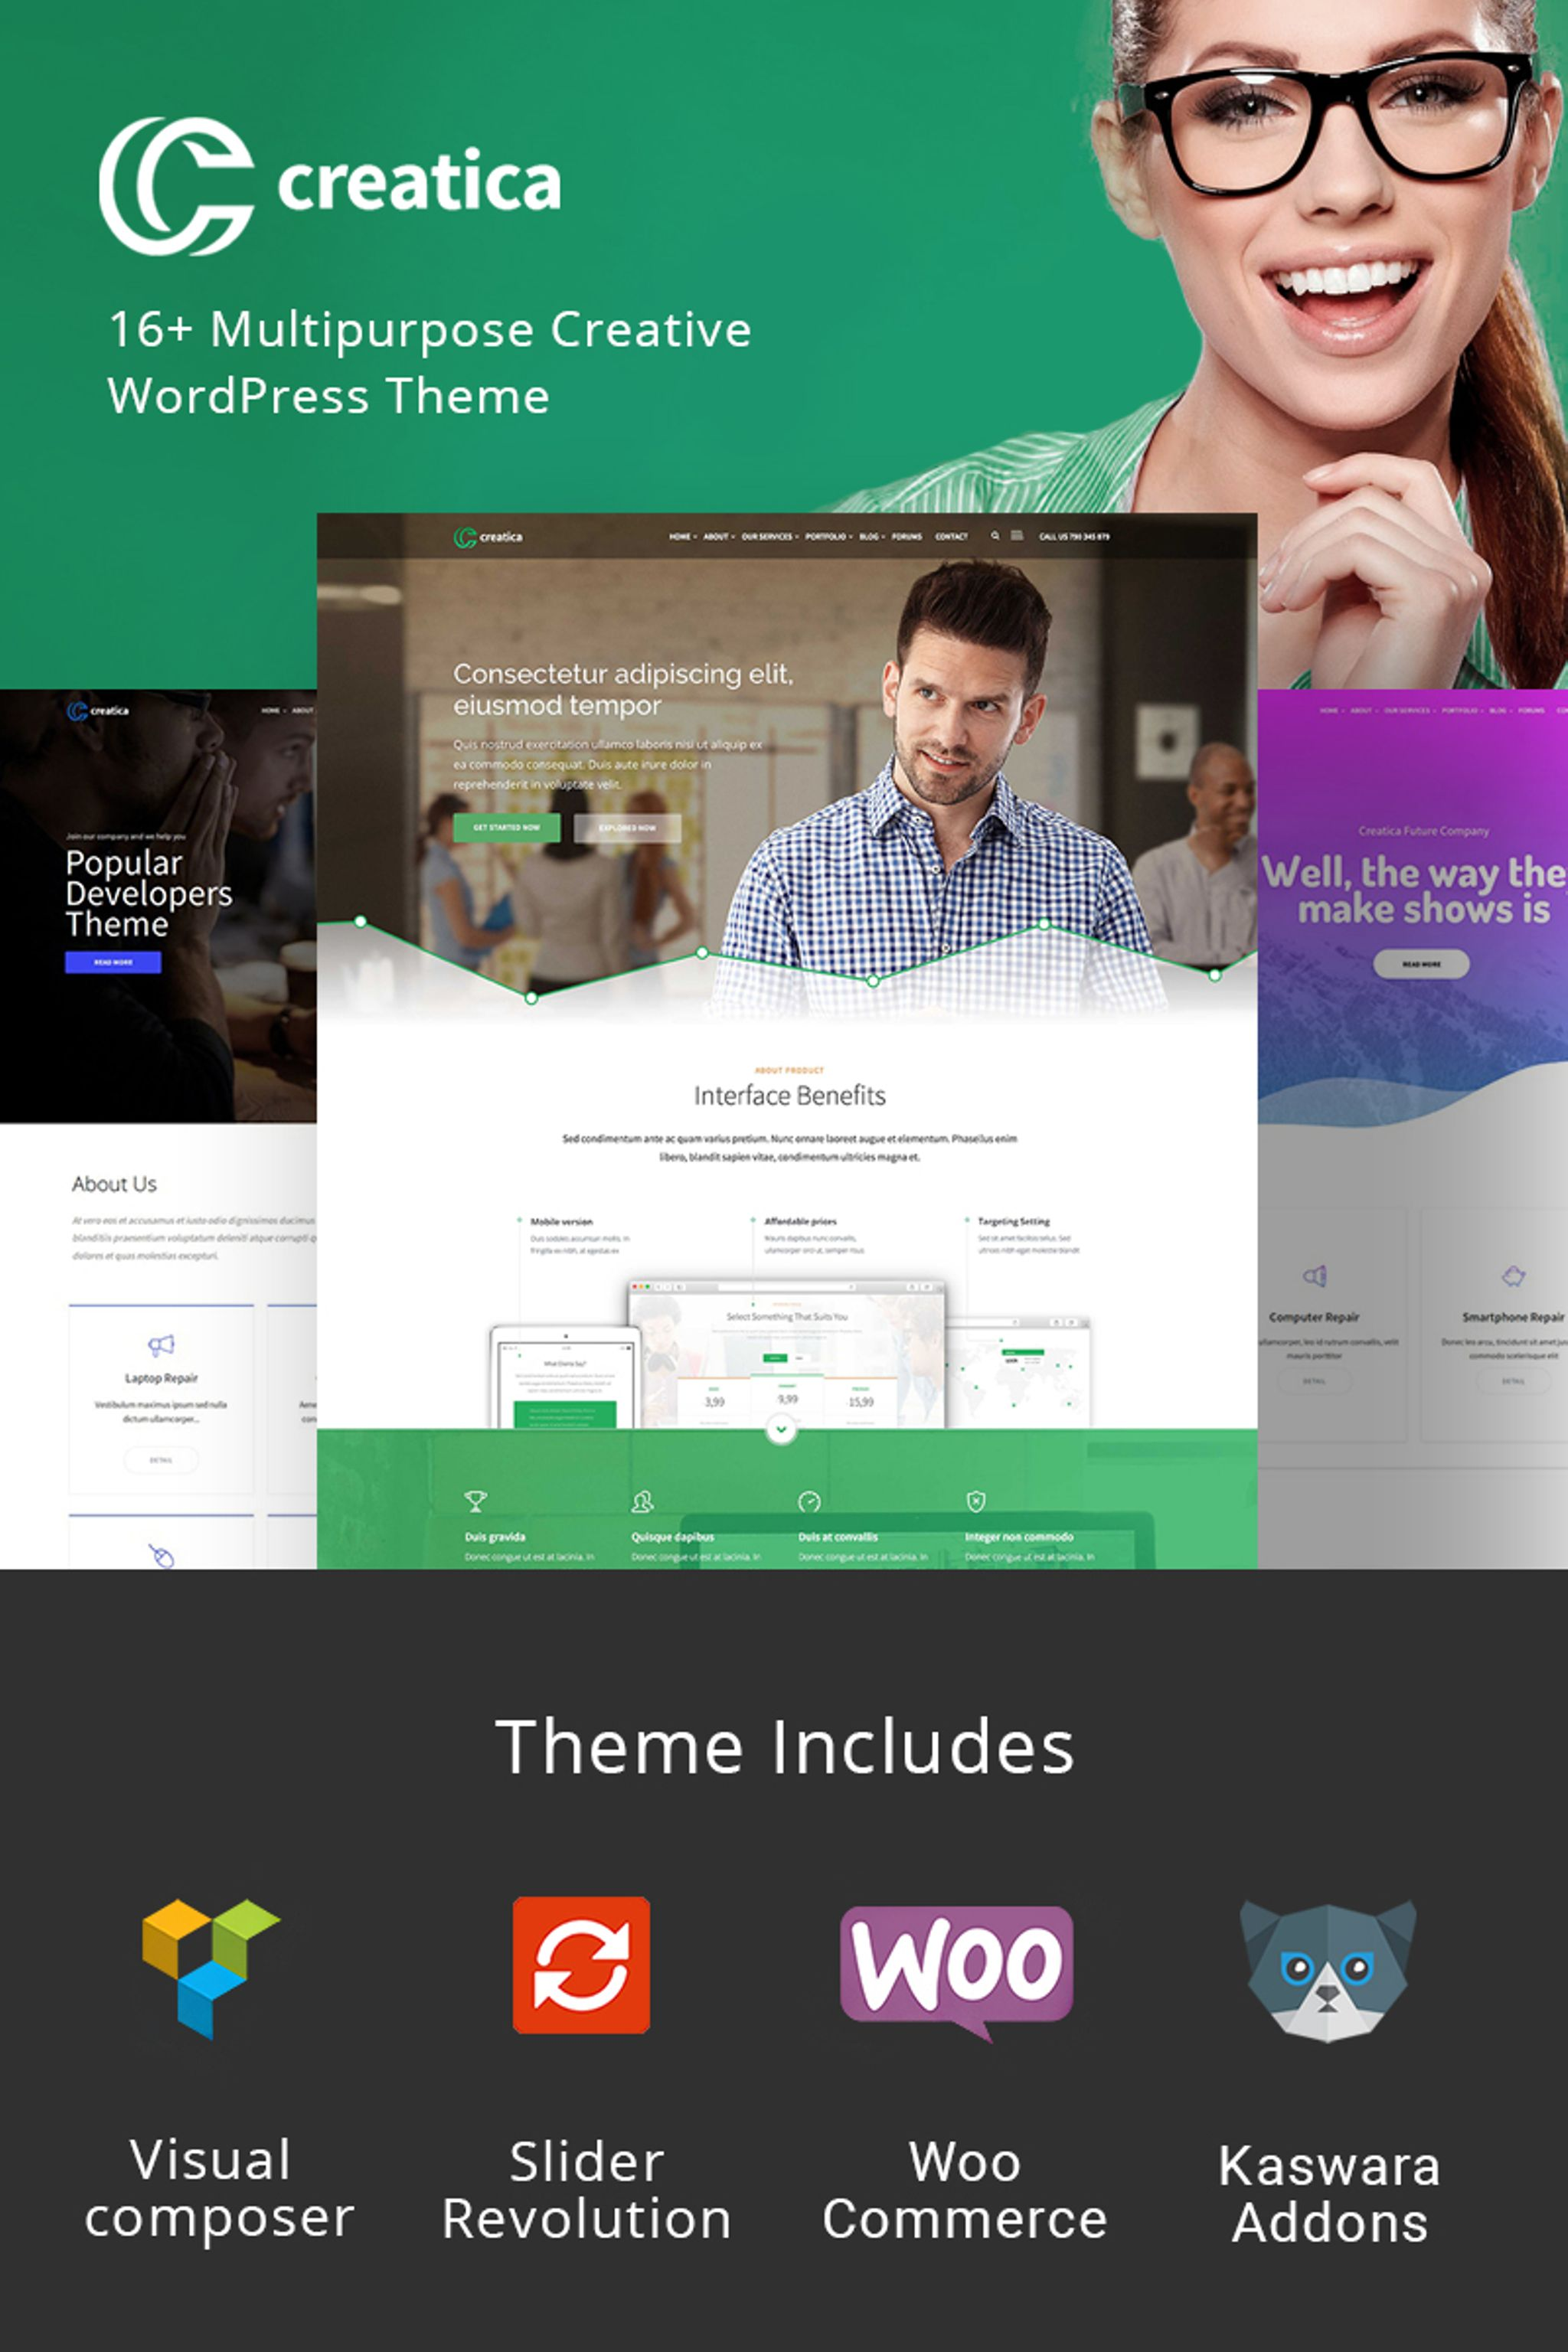 Creatica - Multipurpose WordPress Theme - screenshot